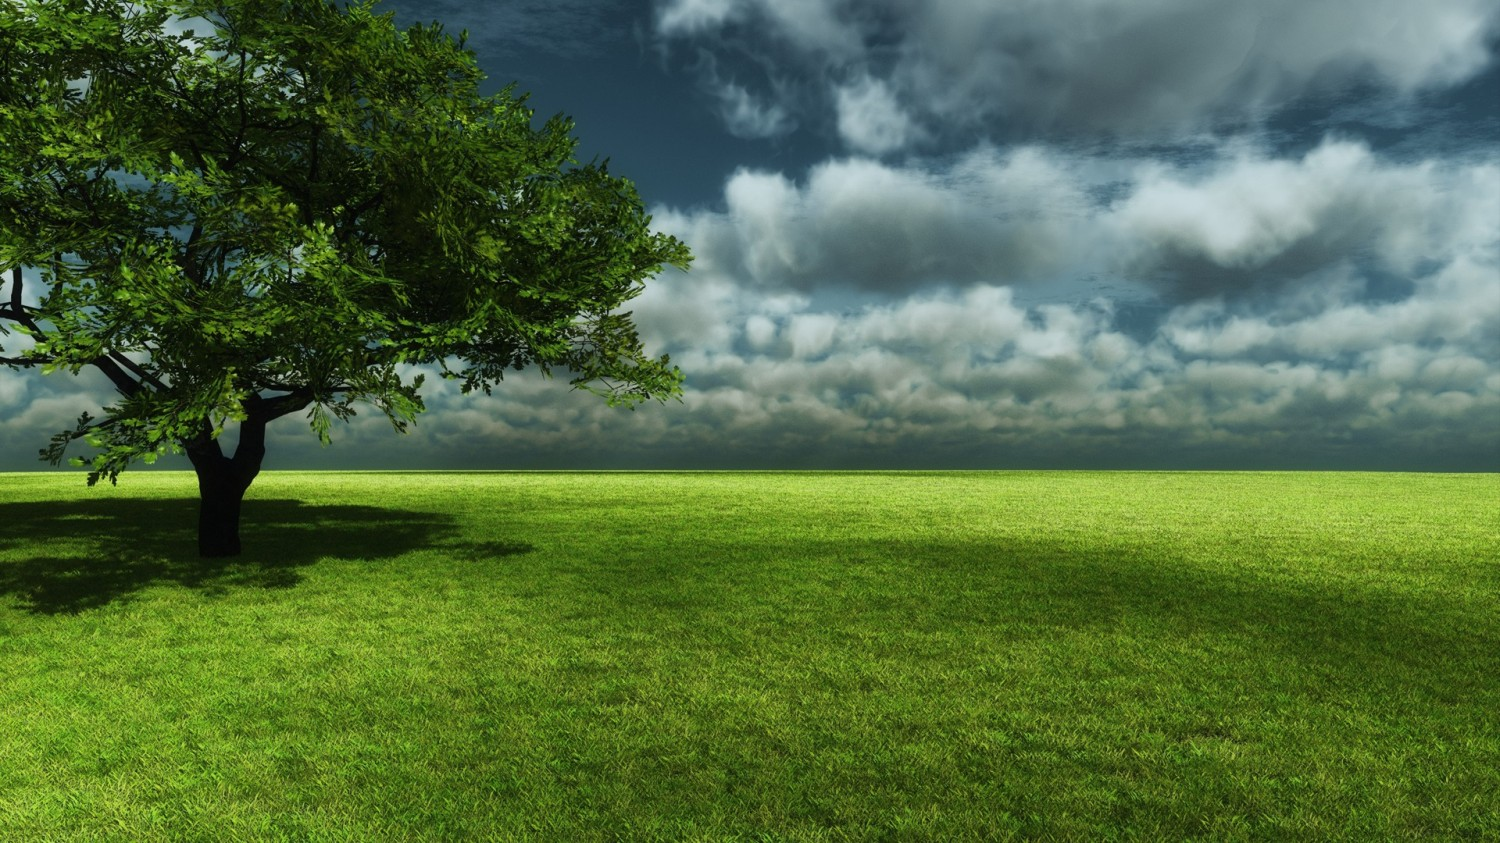 3D Nature Tree Wallpapers HD Wallpaper of Nature   hdwallpaper2013com 1500x843